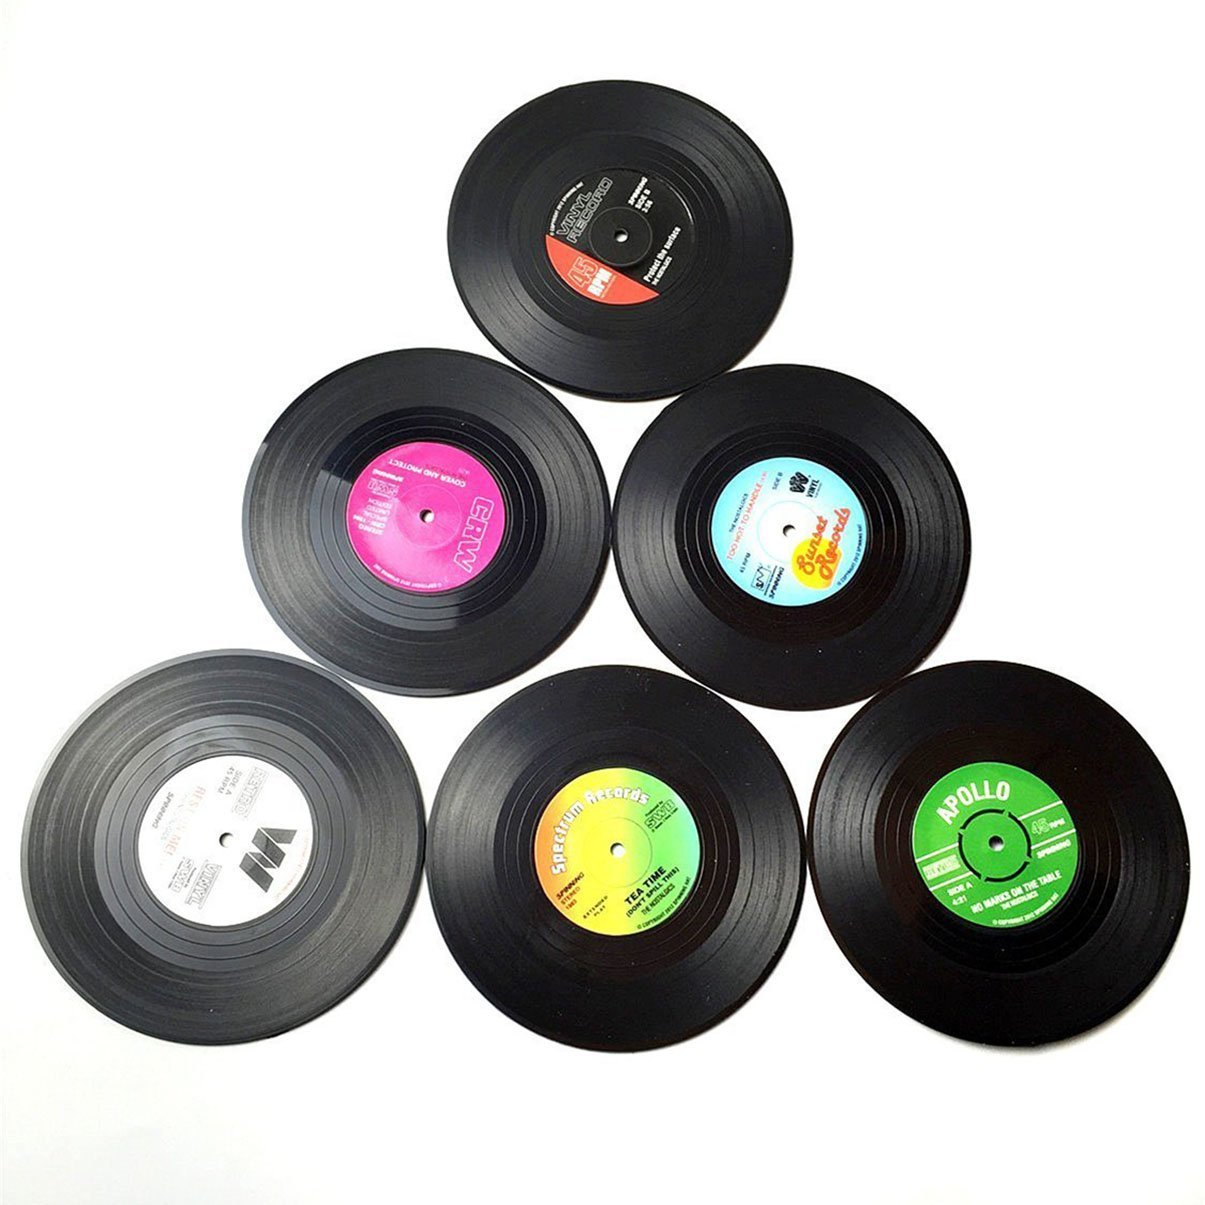 Watson Lee Vintage Vinyl Record Beverage Coasters For Drinks, Wine Glasses, Beer, Whiskey, Cocktail, Hot and Cold Drinks, Set of 6, 4.2 Inch